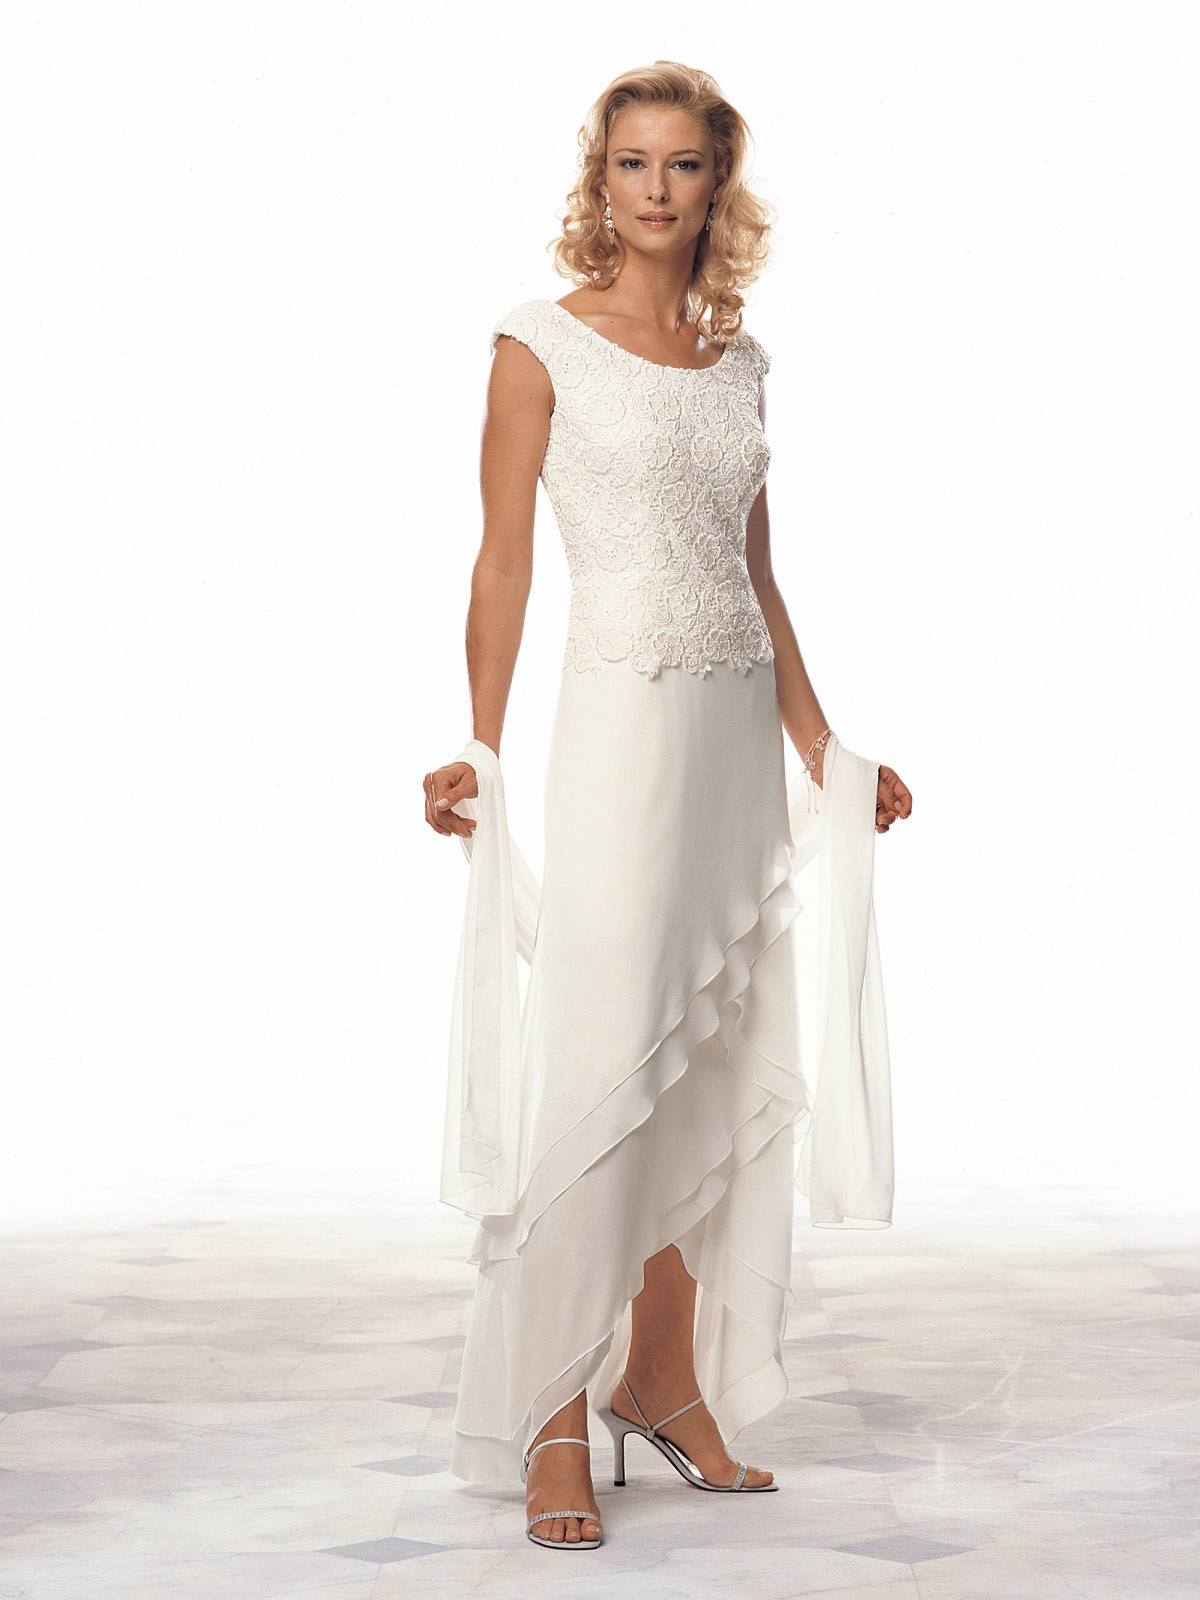 mother of the bride beach wedding dresses photo - 1